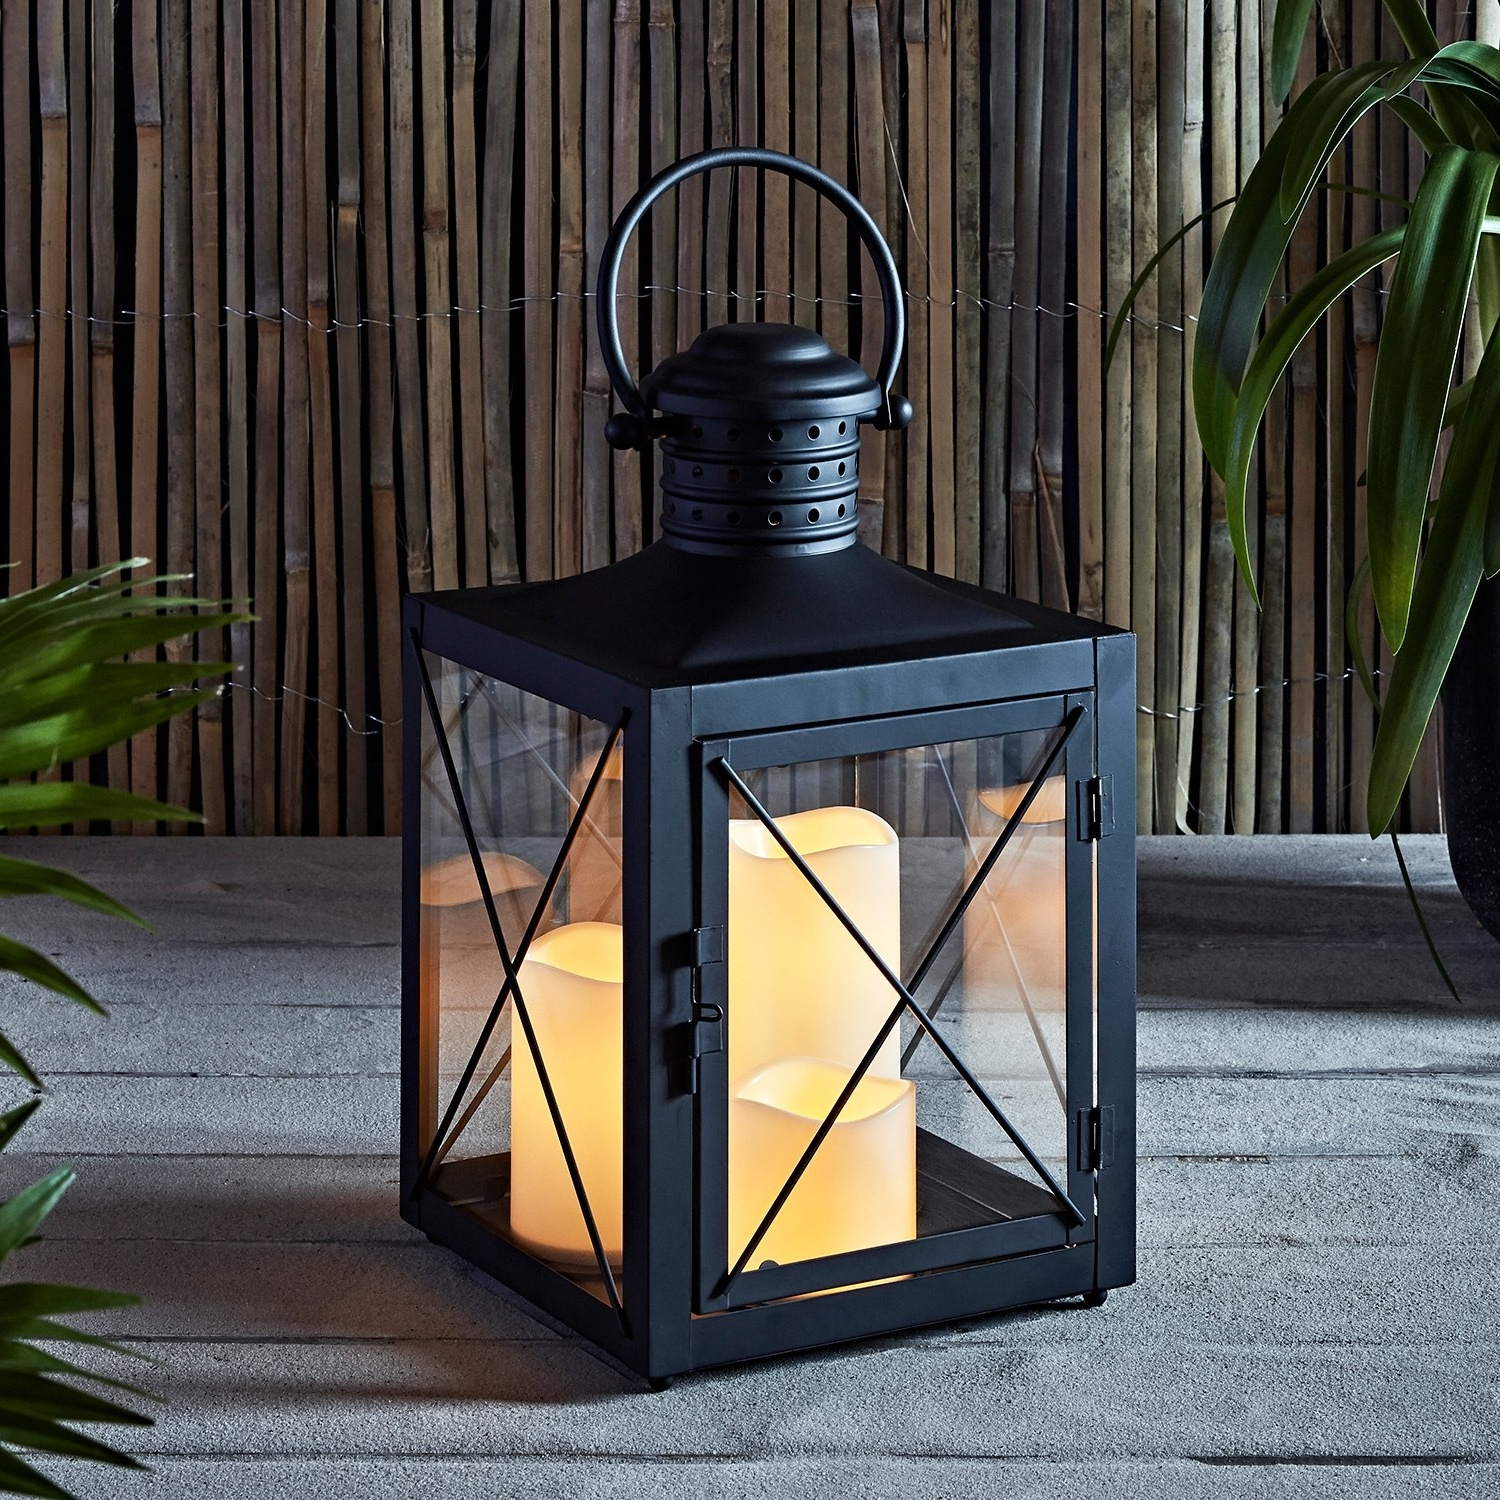 Lights4Fun, Inc.: Square Black Battery Operated Lantern With 3 Within 2018 Outdoor Lanterns With Battery Operated Candles (Gallery 16 of 20)